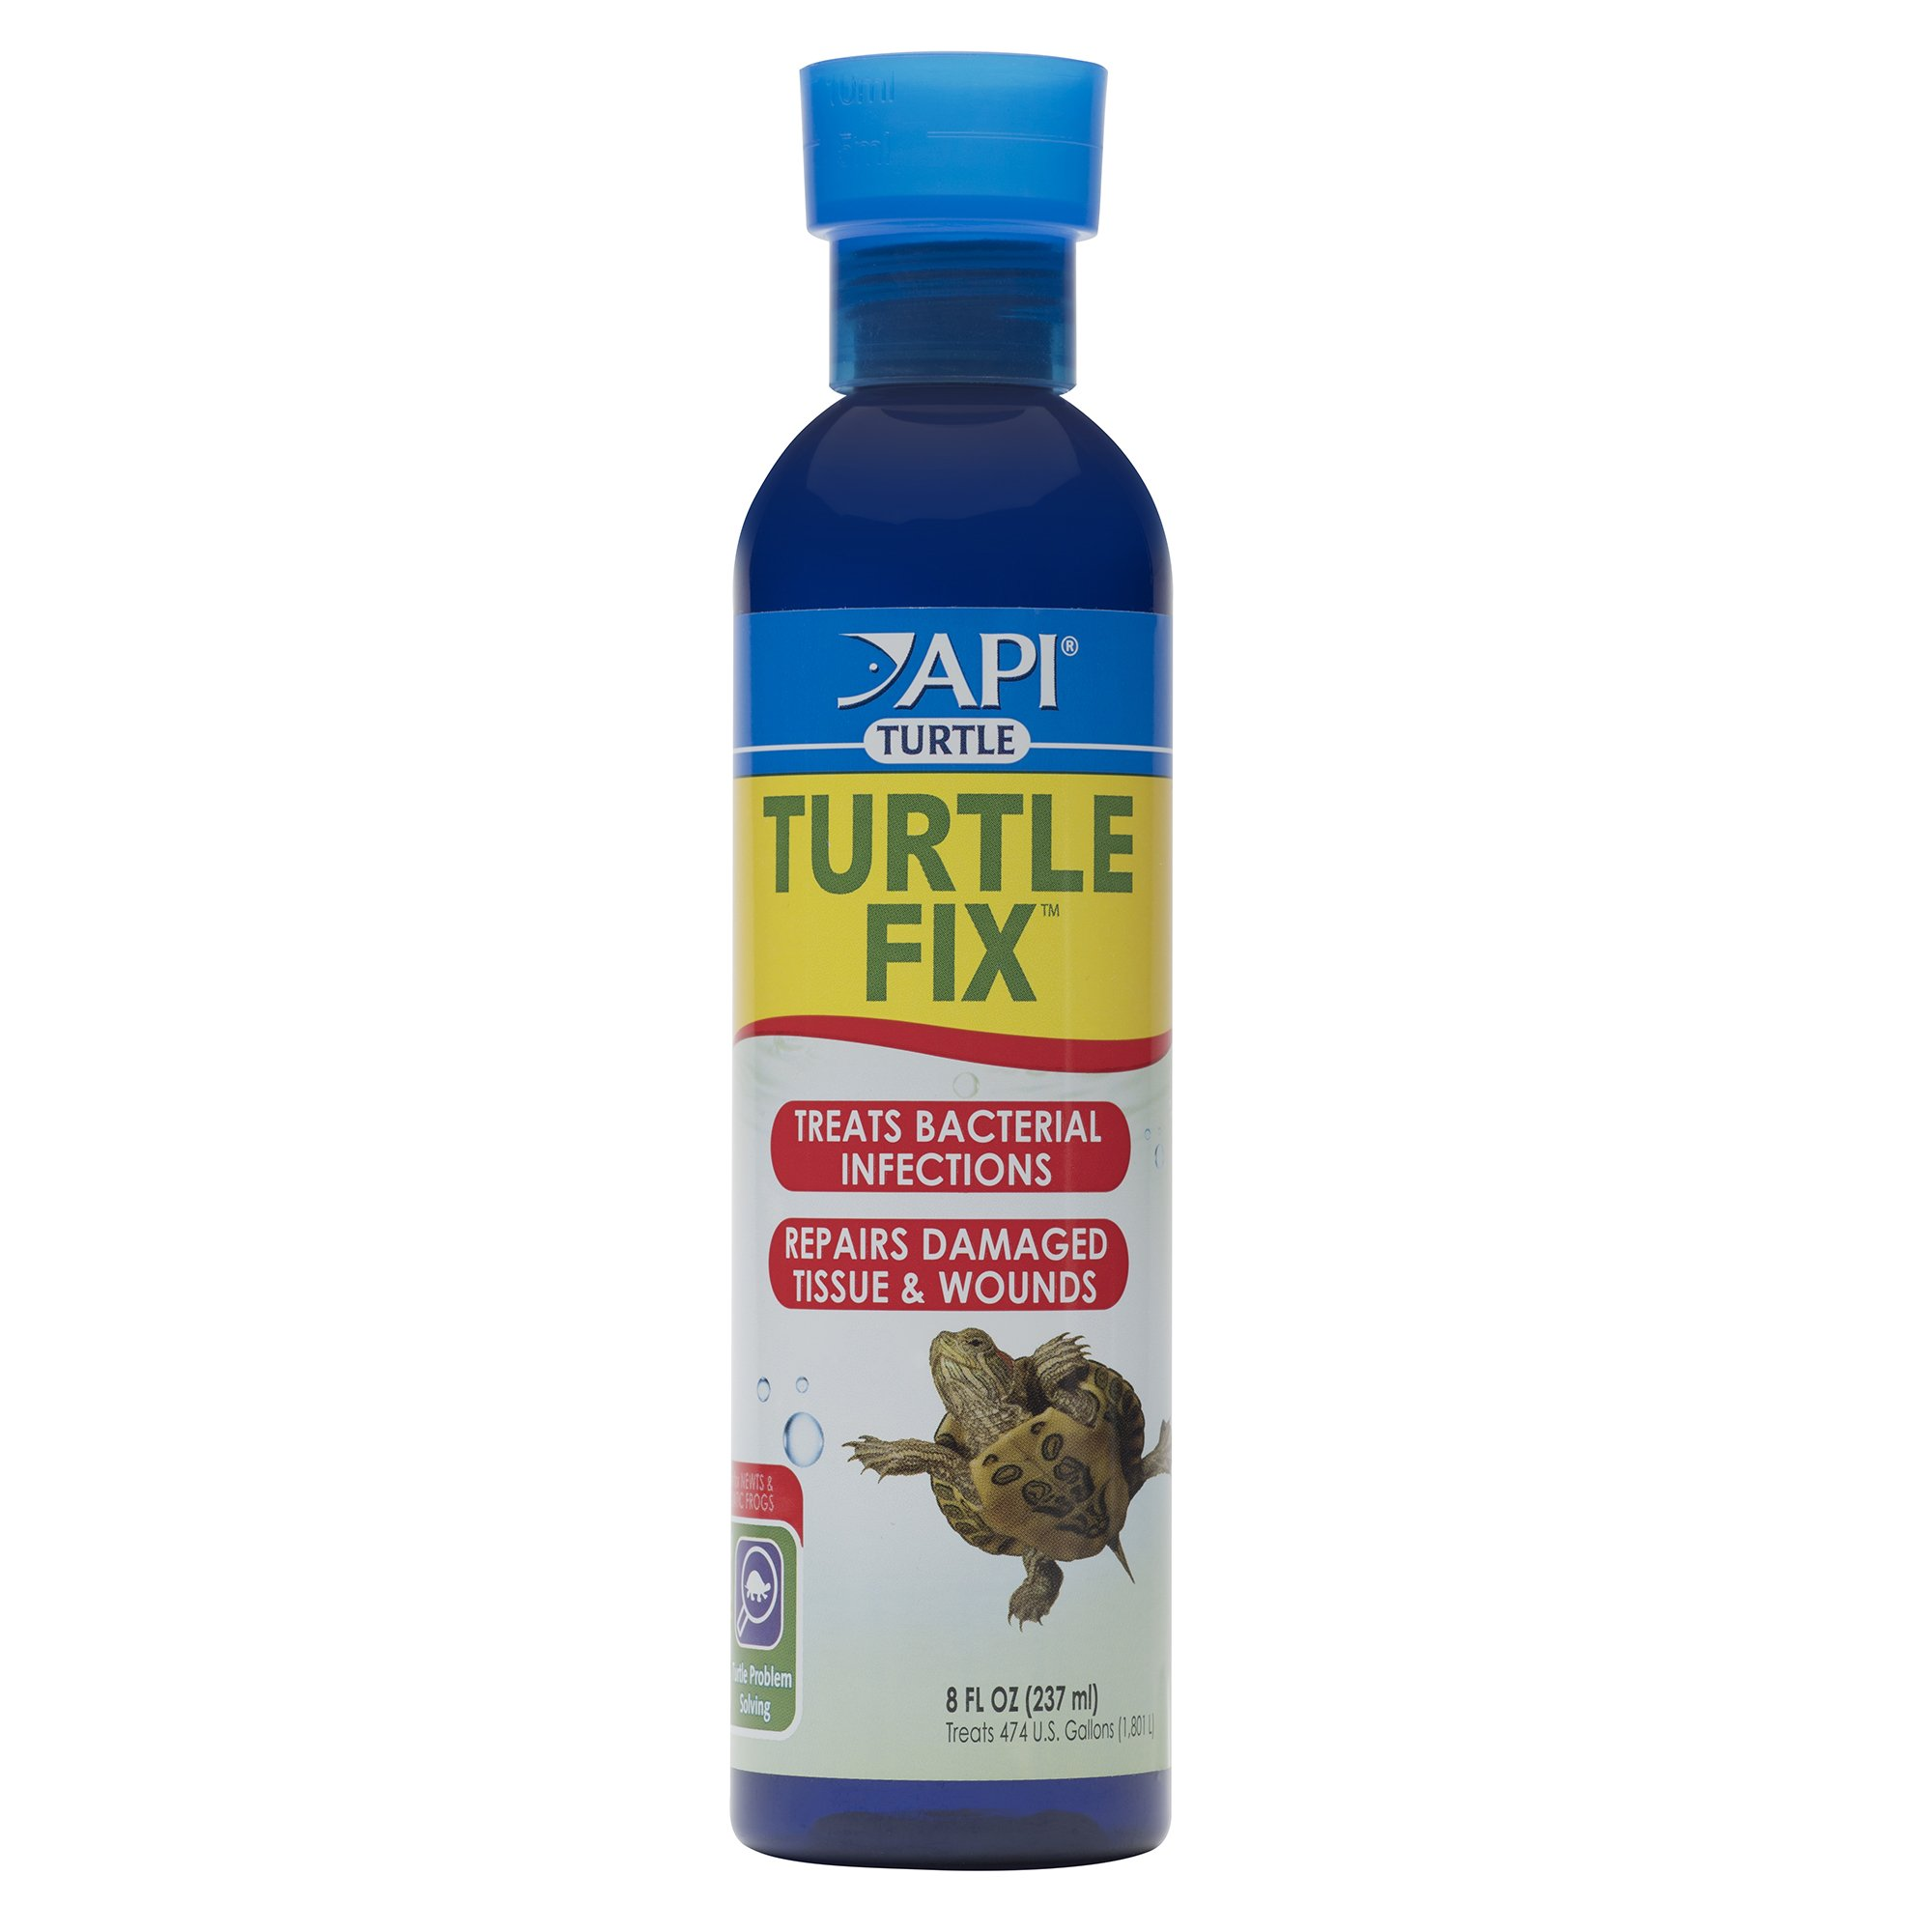 API TURTLE FIX Antibacterial Turtle Remedy 8-Ounce Bottle